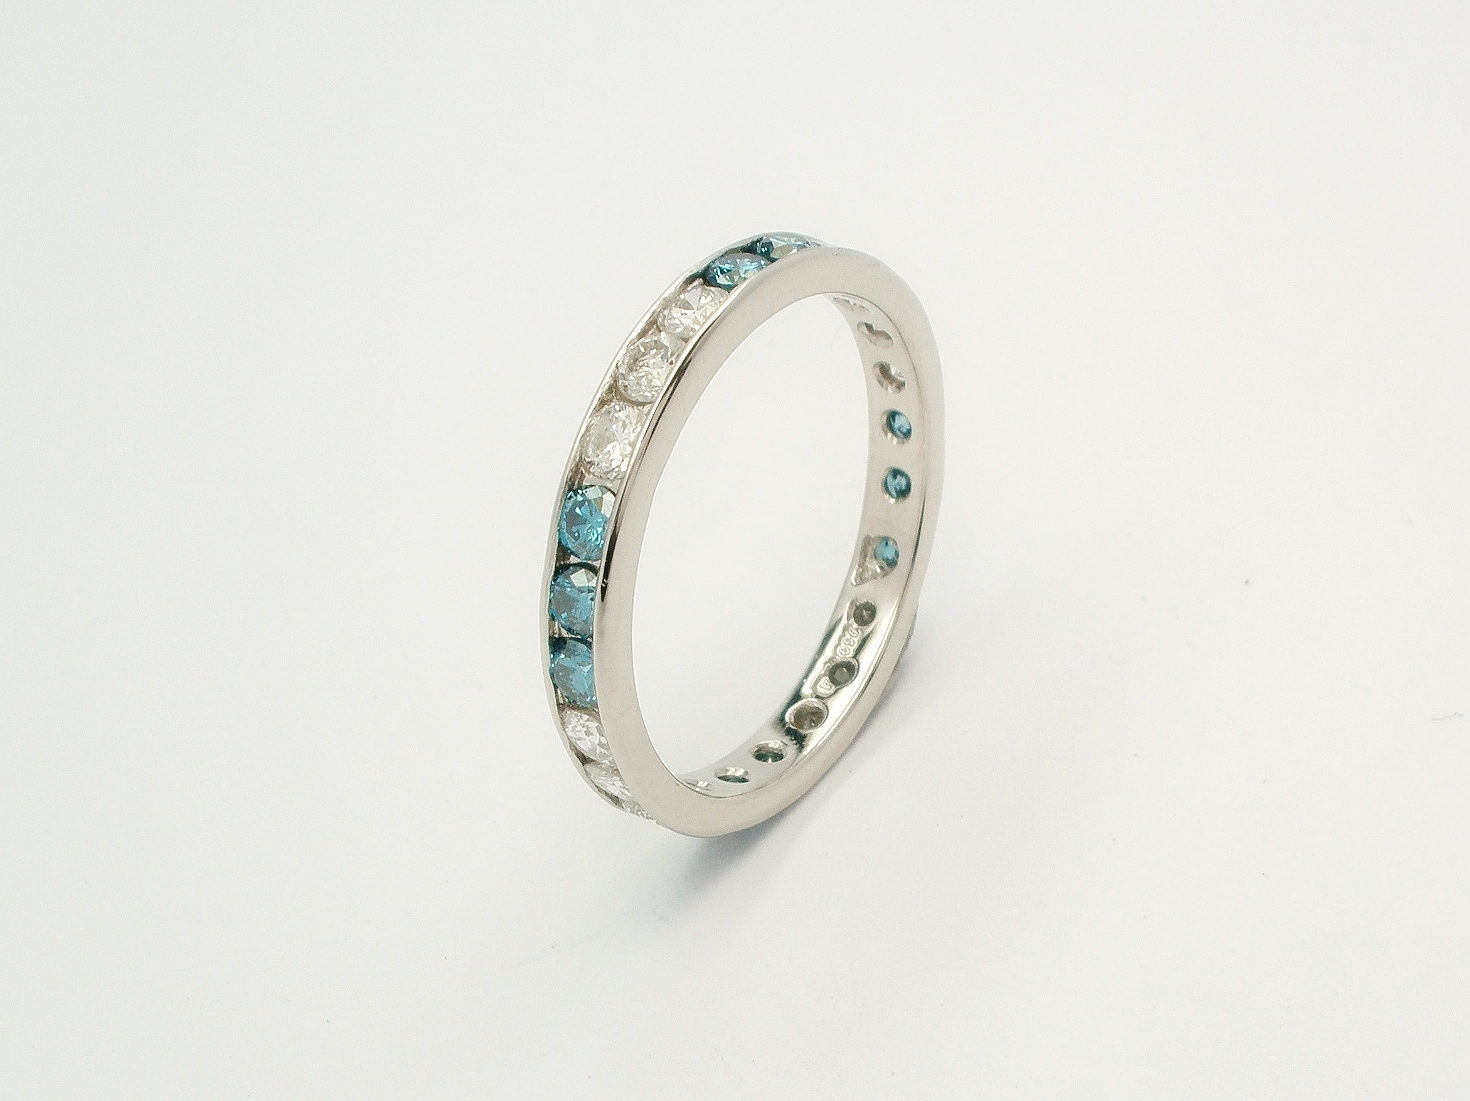 Ocean blue diamond & white diamond full channel set platinum eternity ring.